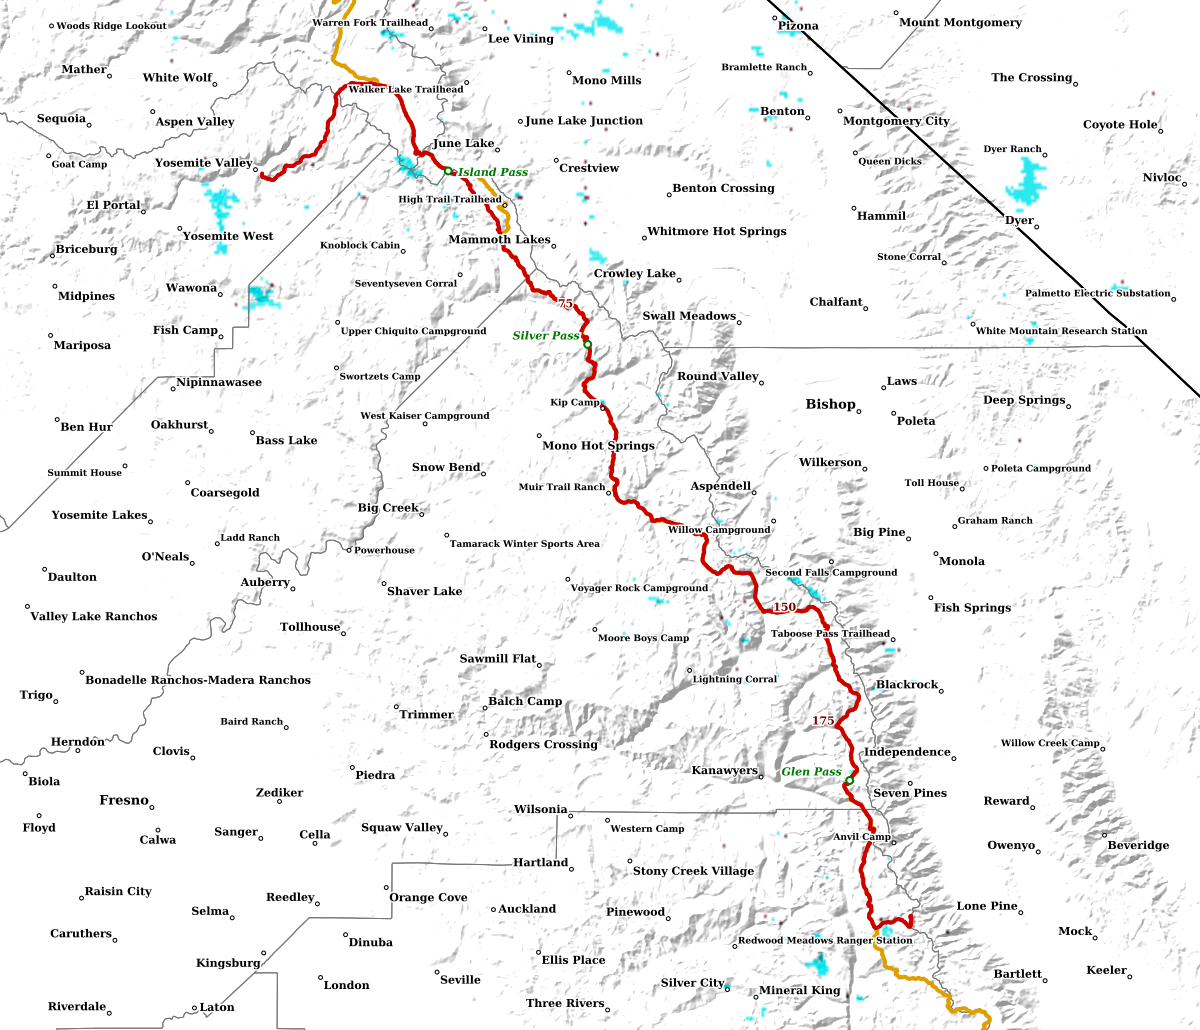 John Muir Trail Snow SNODAS/MODIS, Crabtree Mdw to Tuolumne Mdw